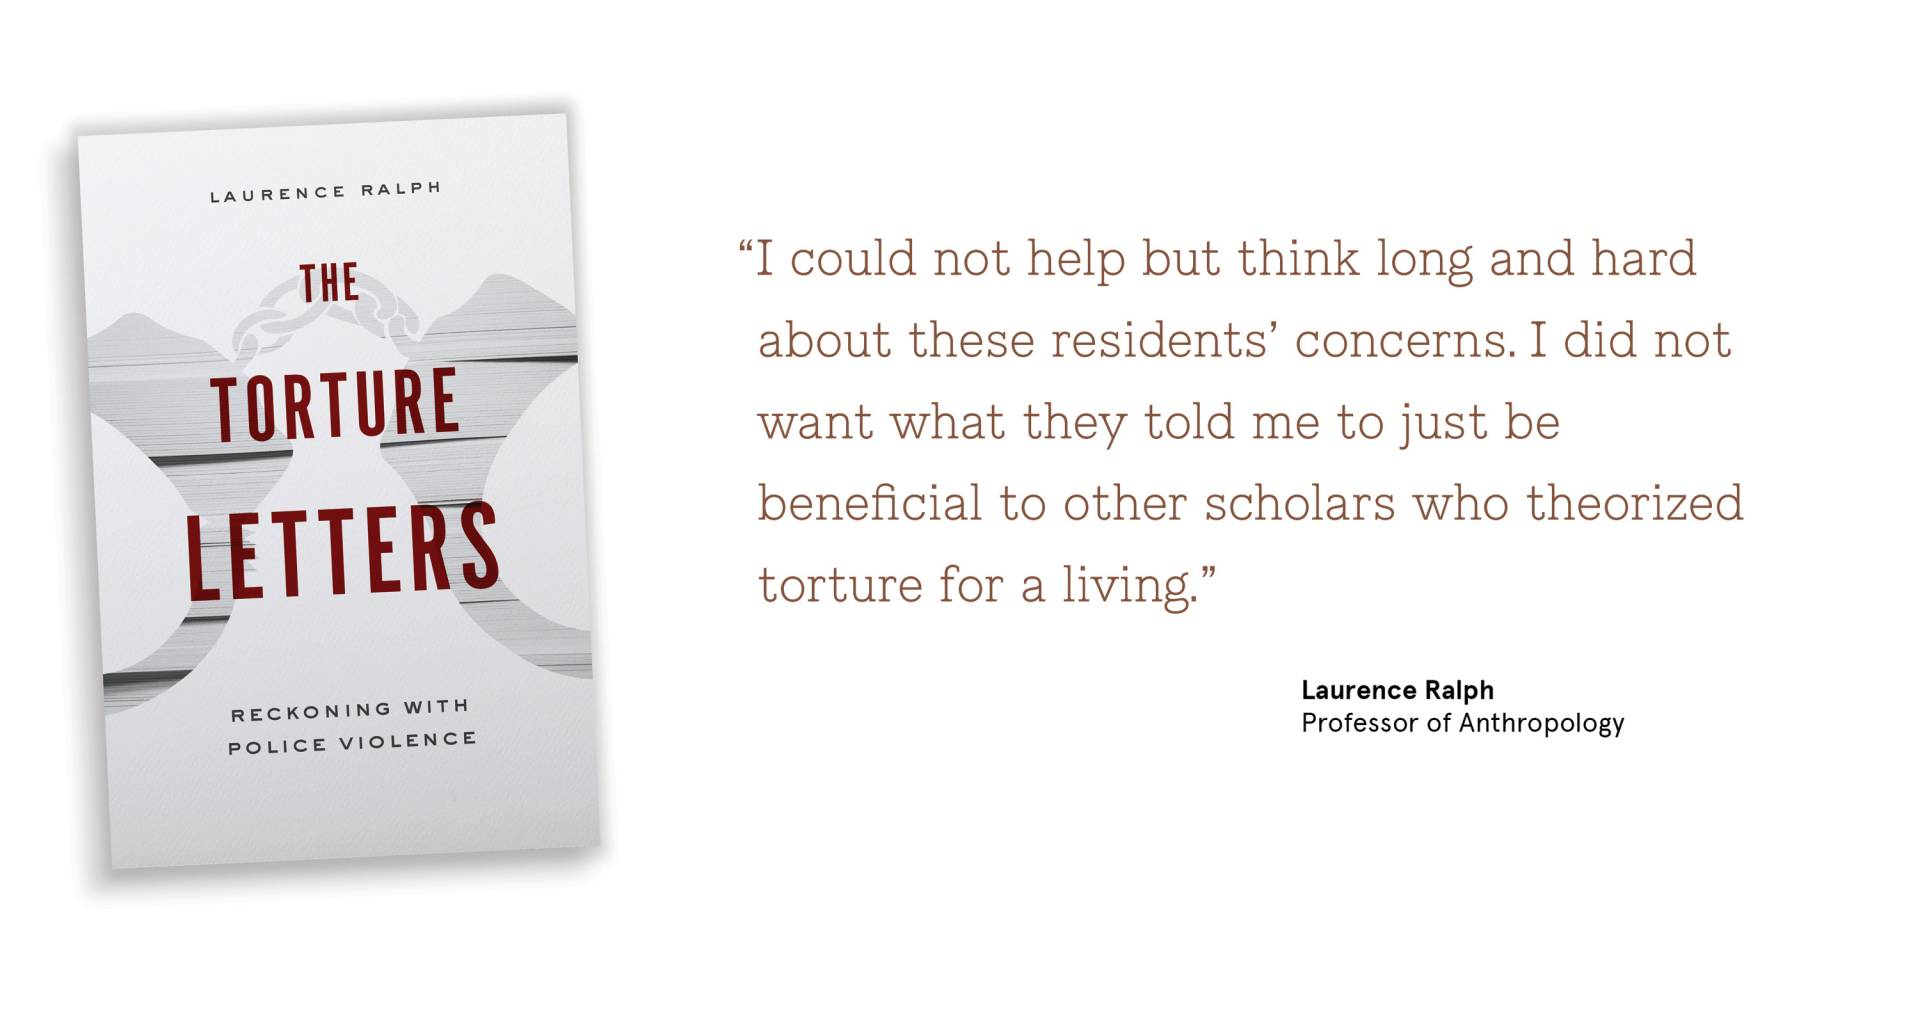 """I could not help but think long and hard about these residents' concerns. I did not  	want what they told me to just be beneficial to other scholars who theorized torture for a living.""   Laurence Ralph Professor of Anthropology"